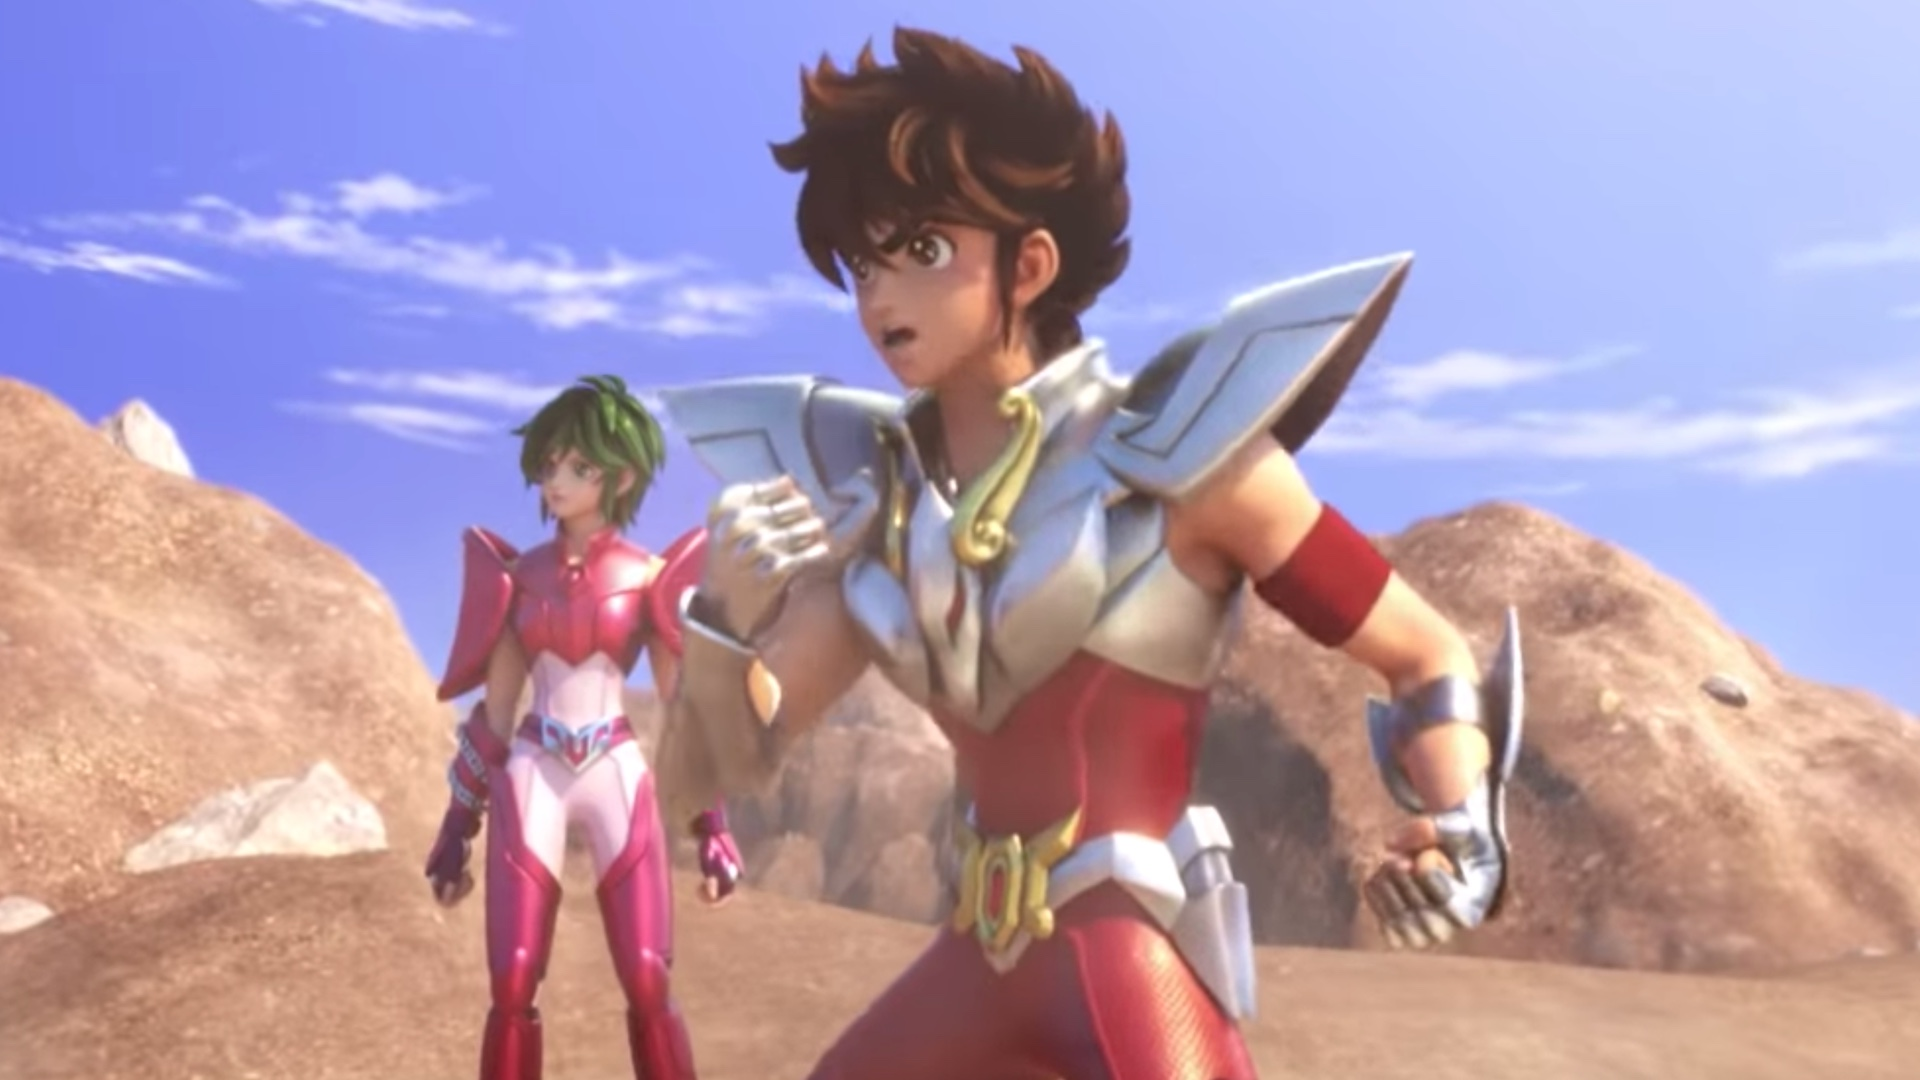 Saint seiya is an anime beloved by many in their quest to bring more anime to their service netflix is making a cg series based on the same concept